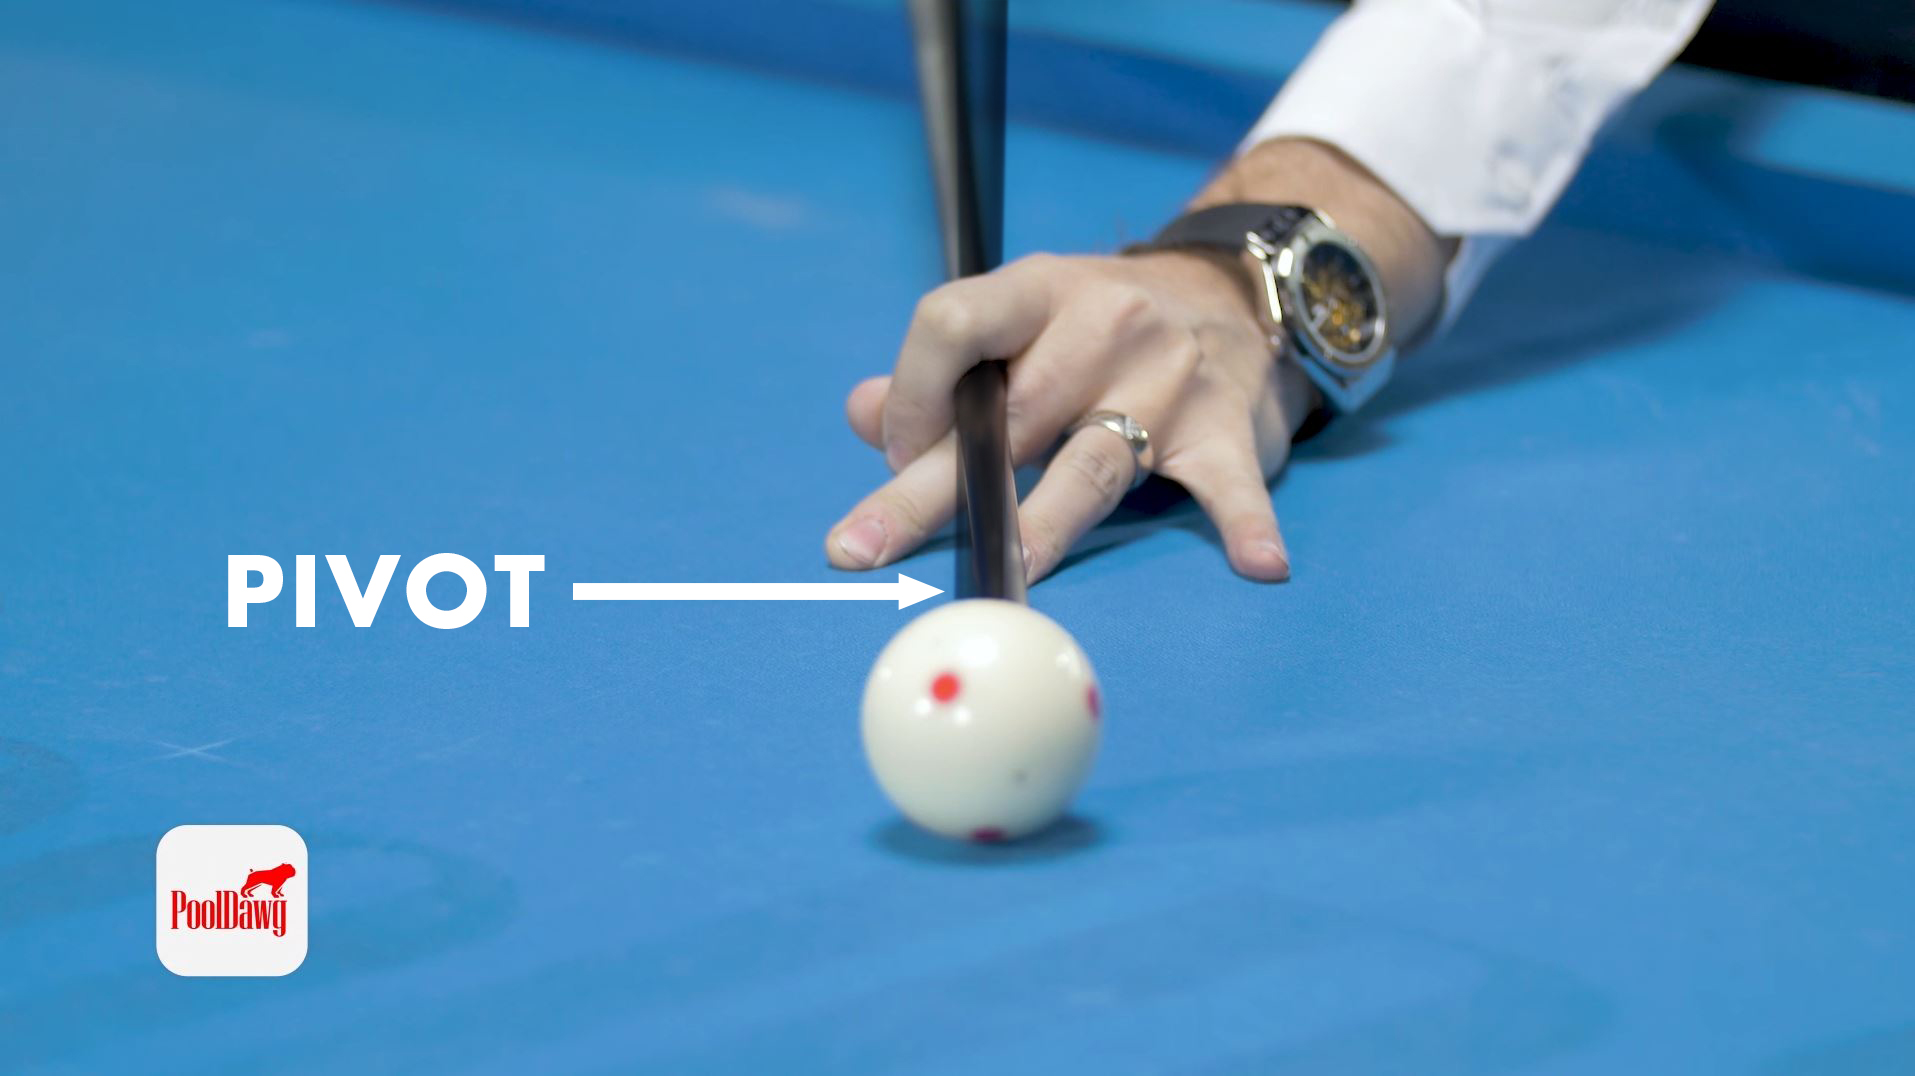 Florian lines up a left cut shot, planting his bridge hand with one tip of left English and then pivots with the back hand to align the tip to the center of the cue ball.